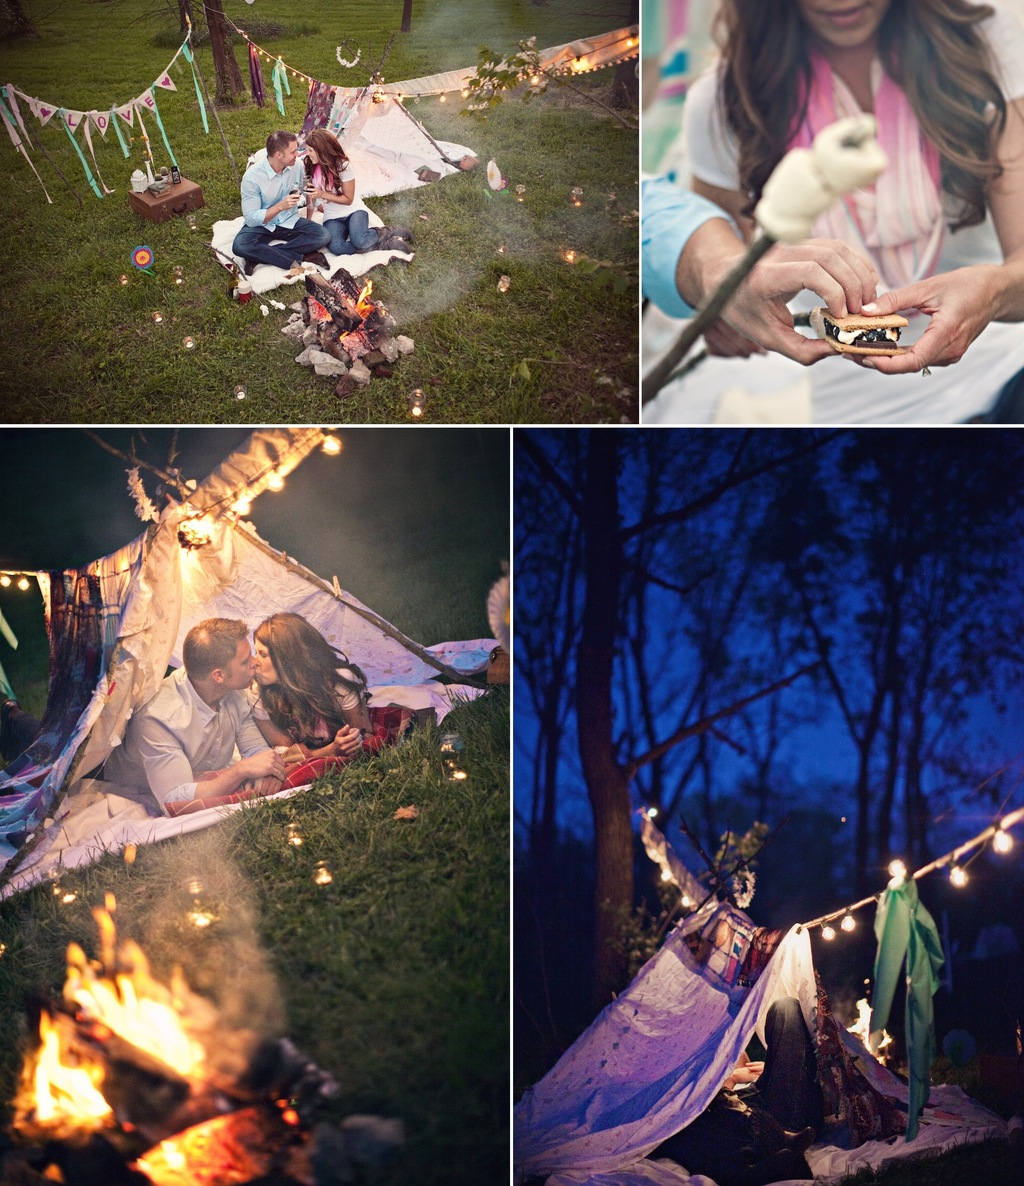 Rustic-engagment-session-in-the-woods-bride-groom-roast-marshmellos.full